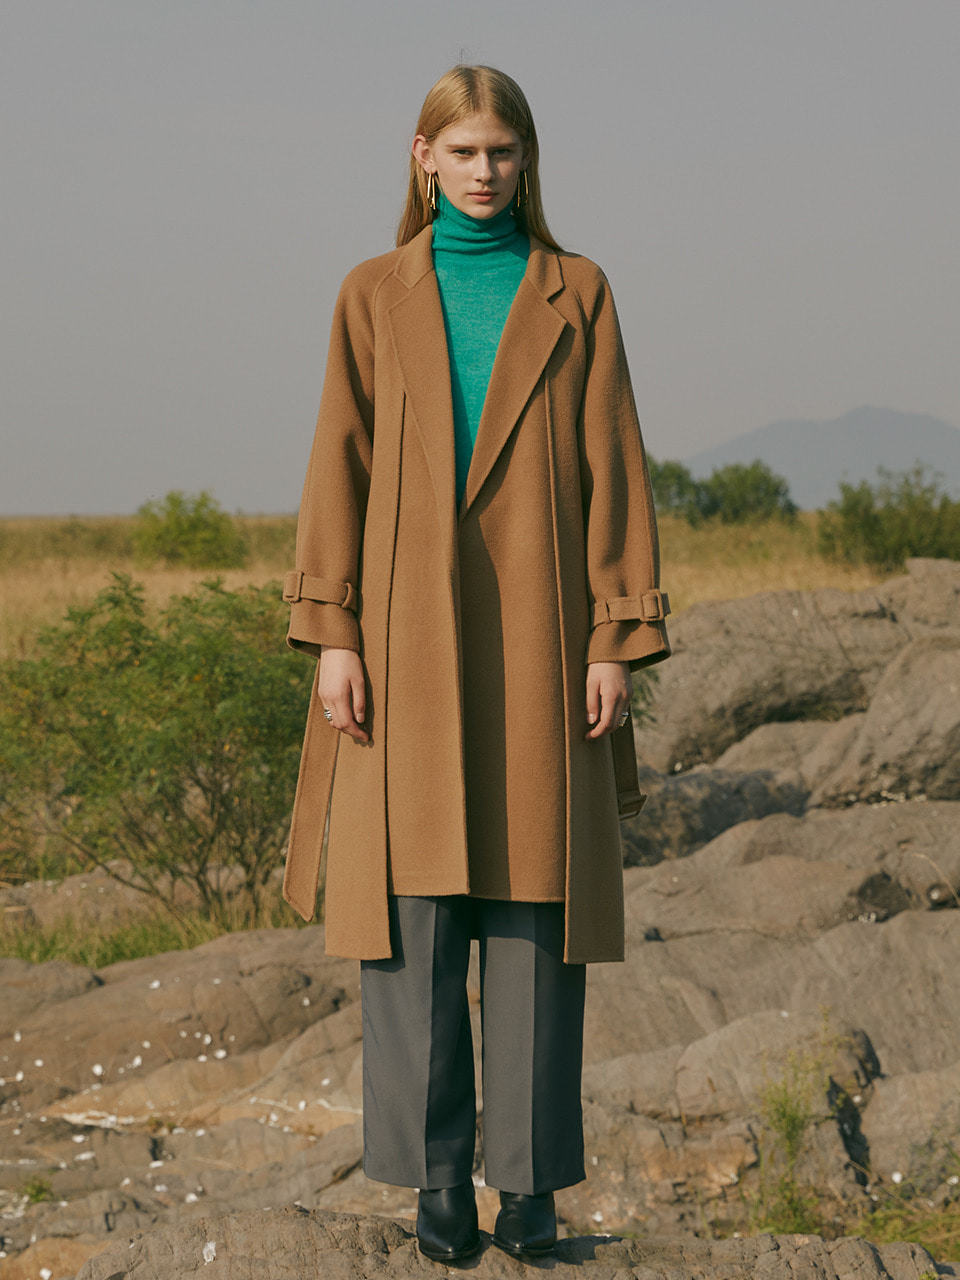 Premium handmade cashmere blend wool double layer belted coat in camel